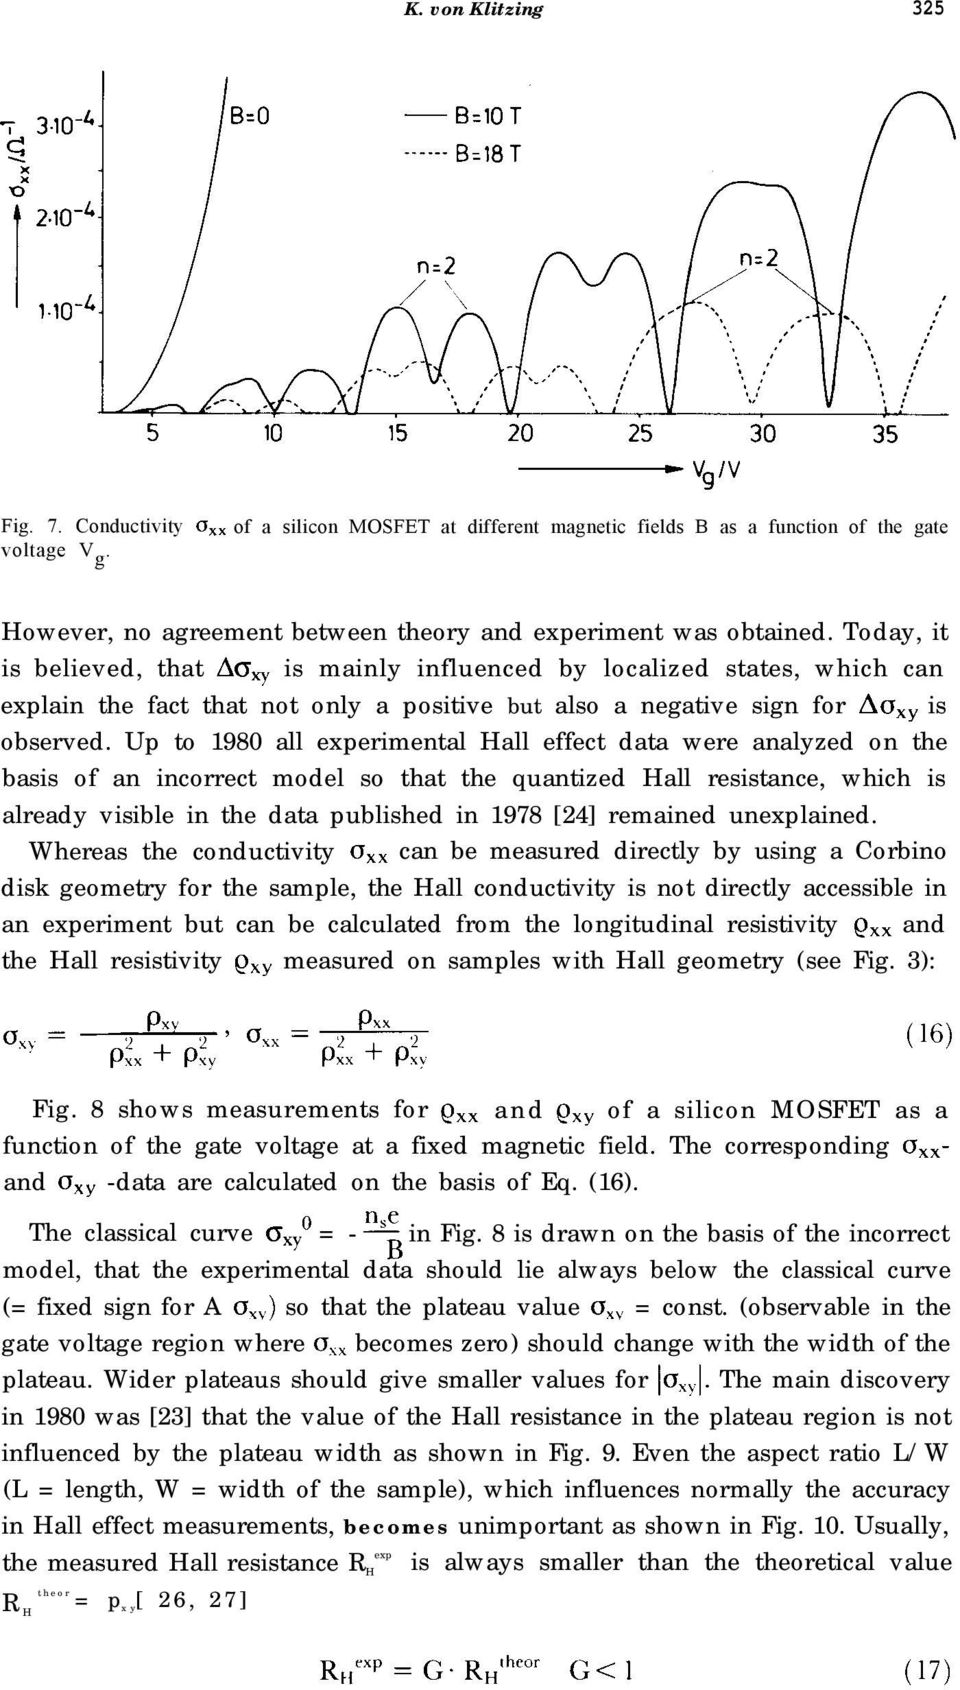 Up to 1980 all experimental Hall effect data were analyzed on the basis of an incorrect model so that the quantized Hall resistance, which is already visible in the data published in 1978 [24]